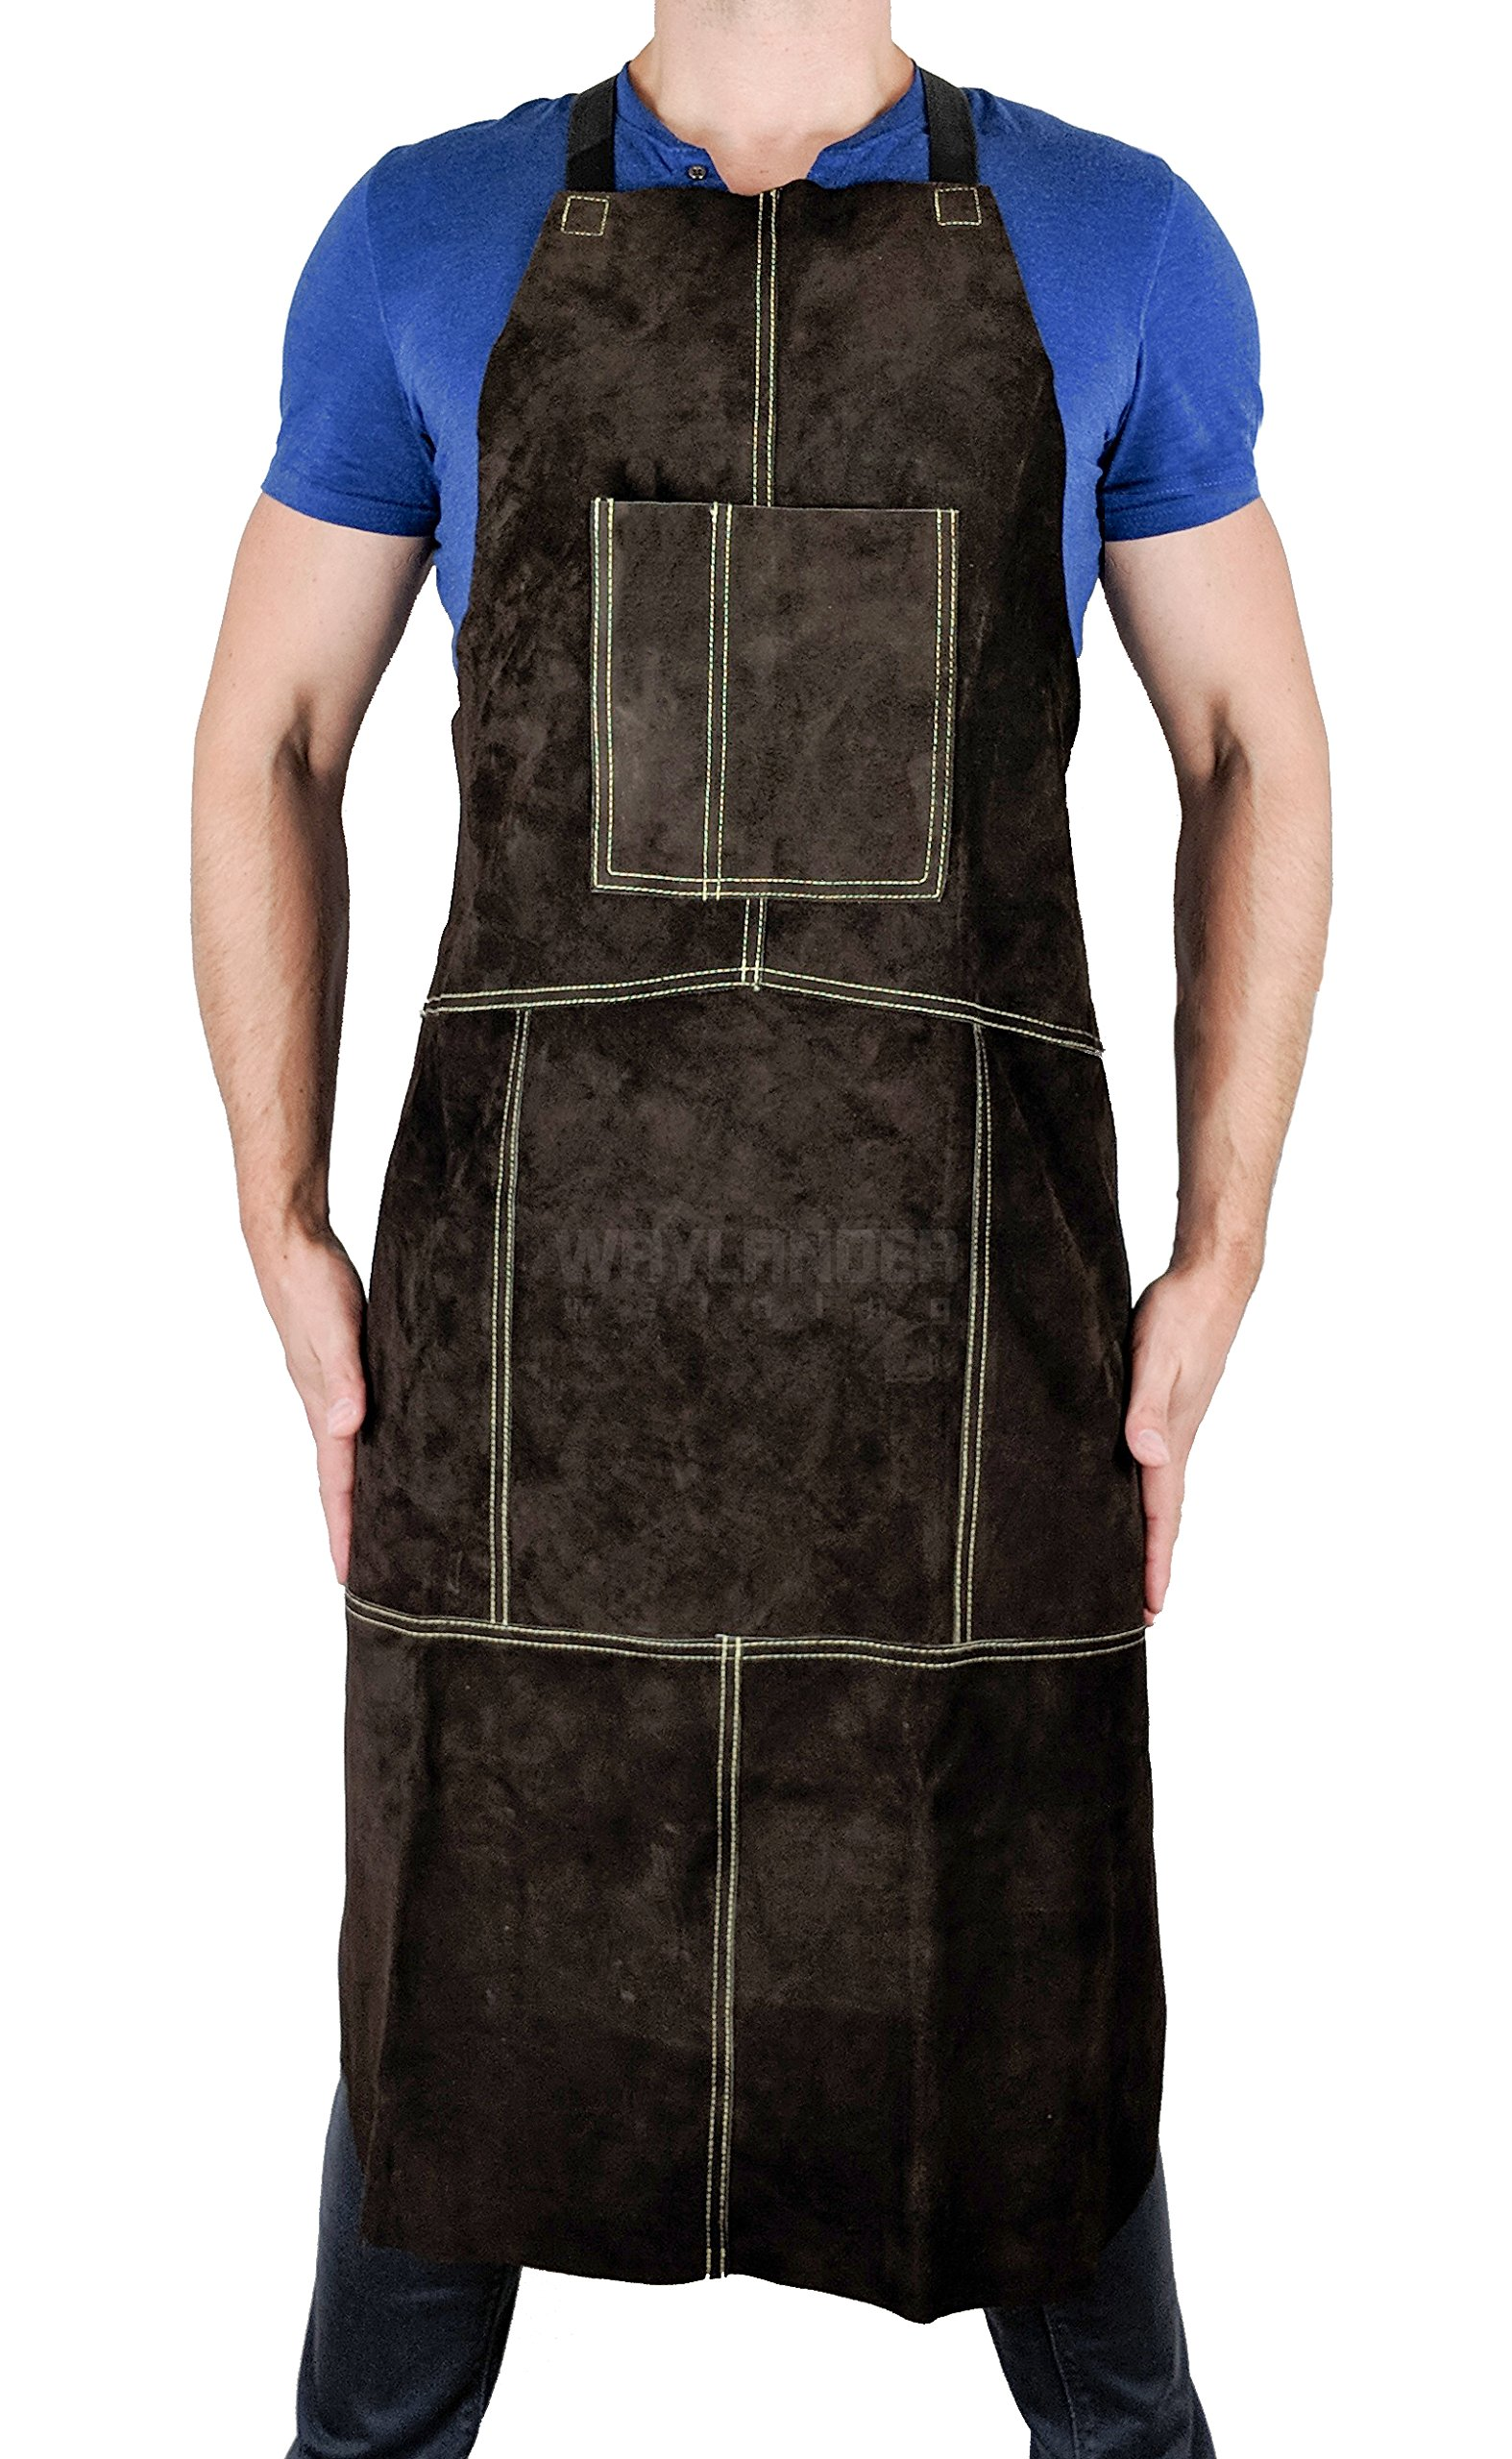 Waylander Leather Welding Apron Flame Resistant Heavy Duty Bib 40'' Dark Brown with Adjustable Crossed Back Straps and Pocket